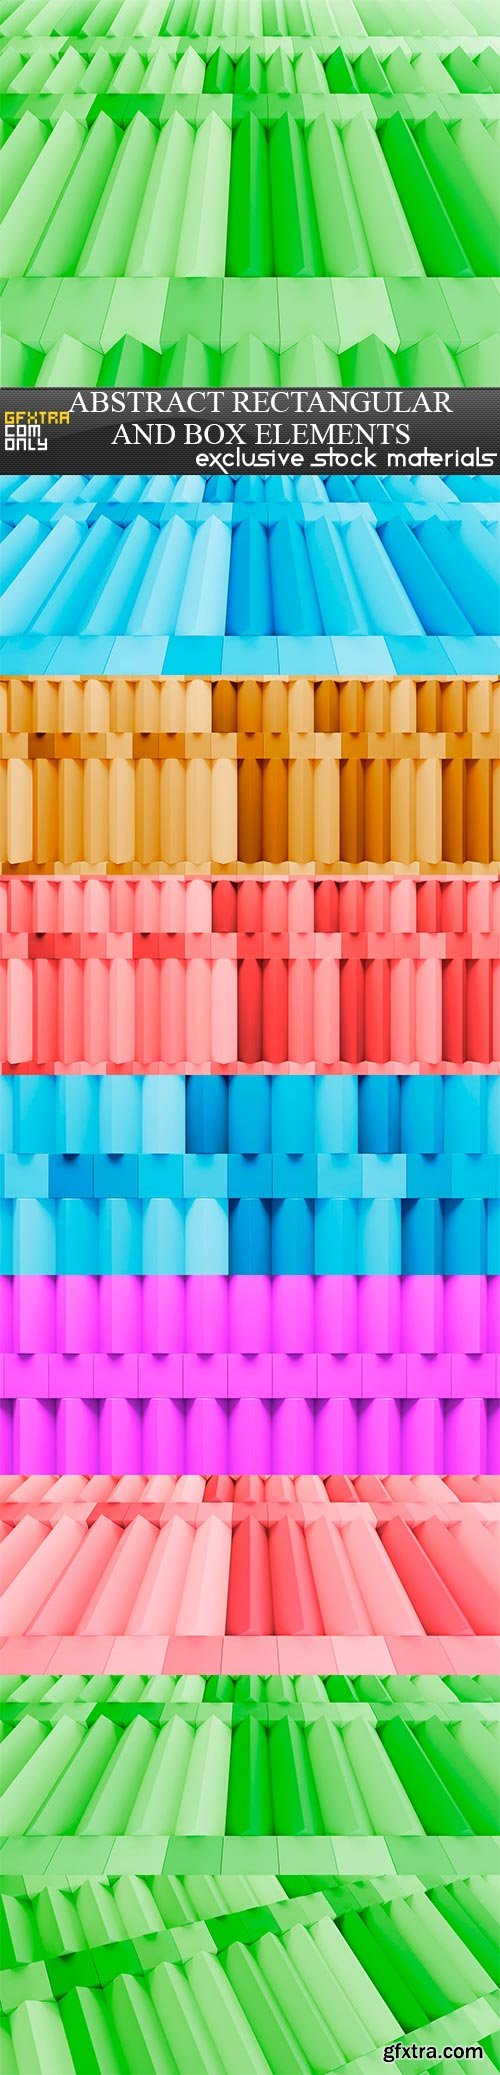 abstract rectangular and box elements background with, 8 x UHQ JPEG